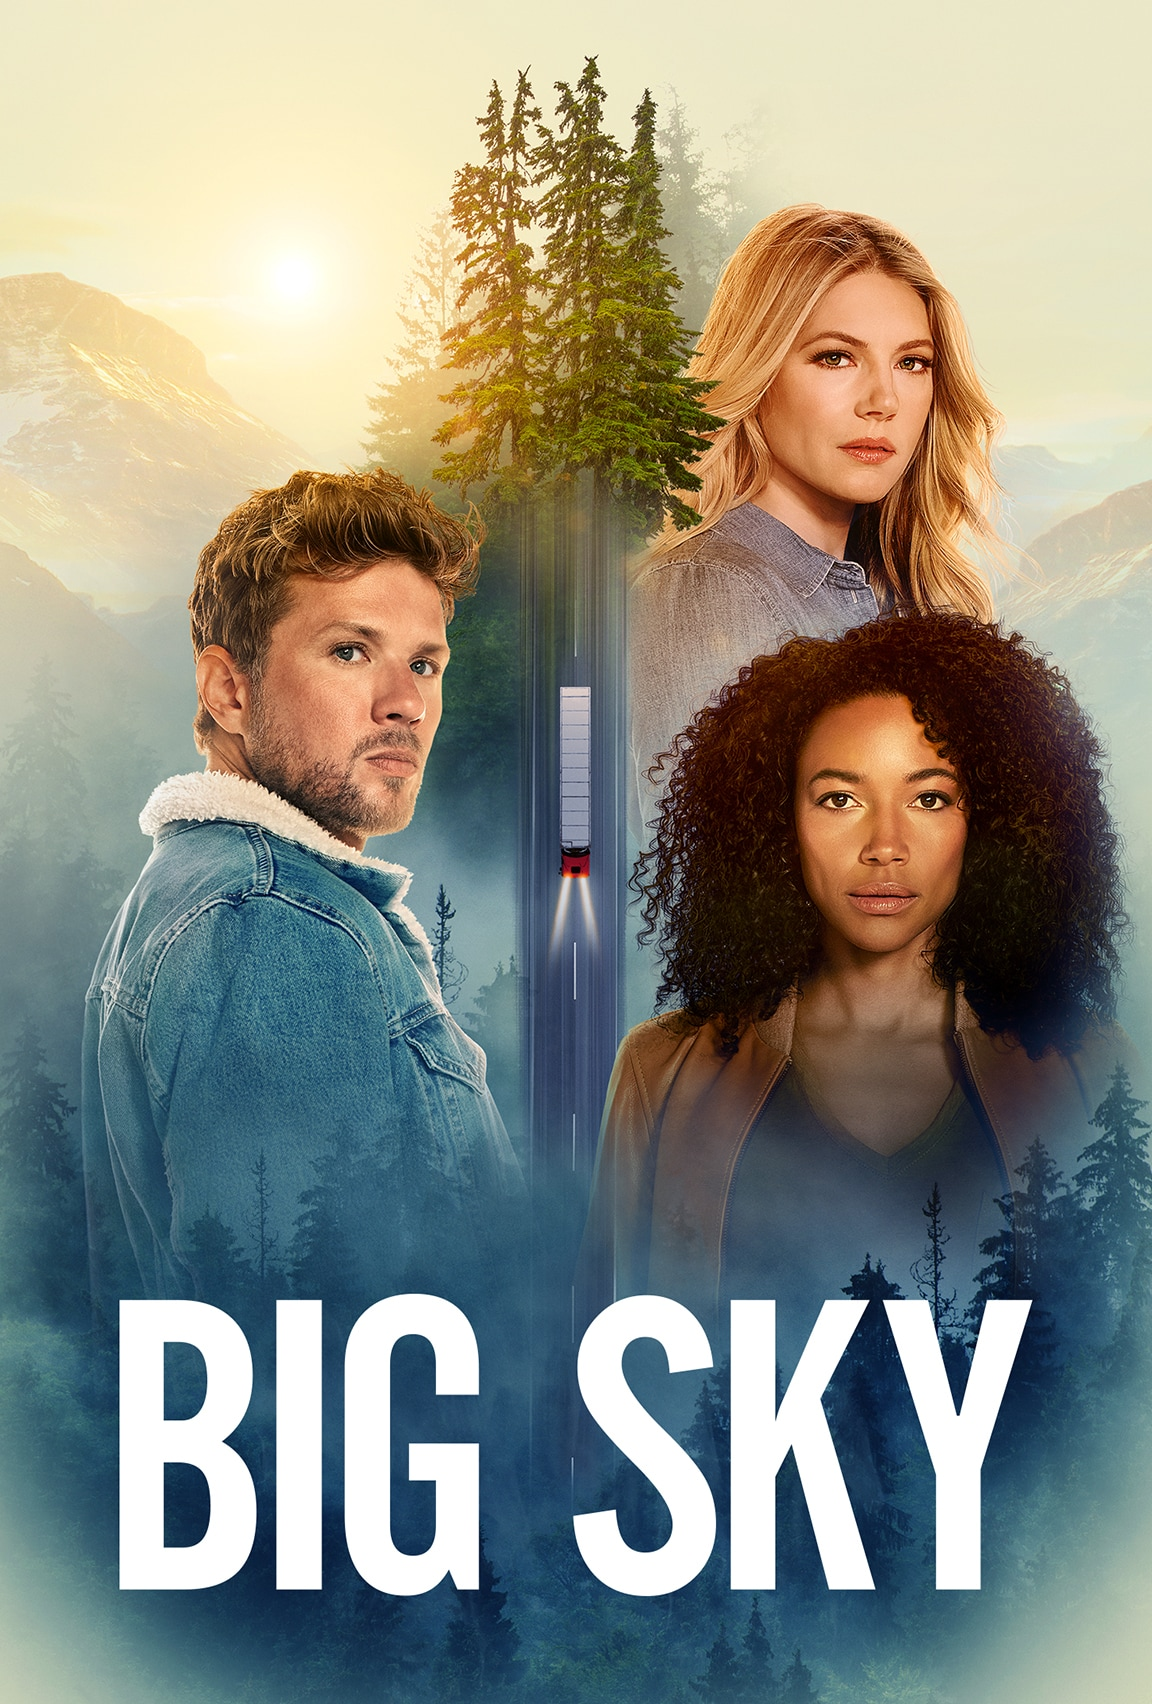 Big Sky, a Star on Disney+ Original Series